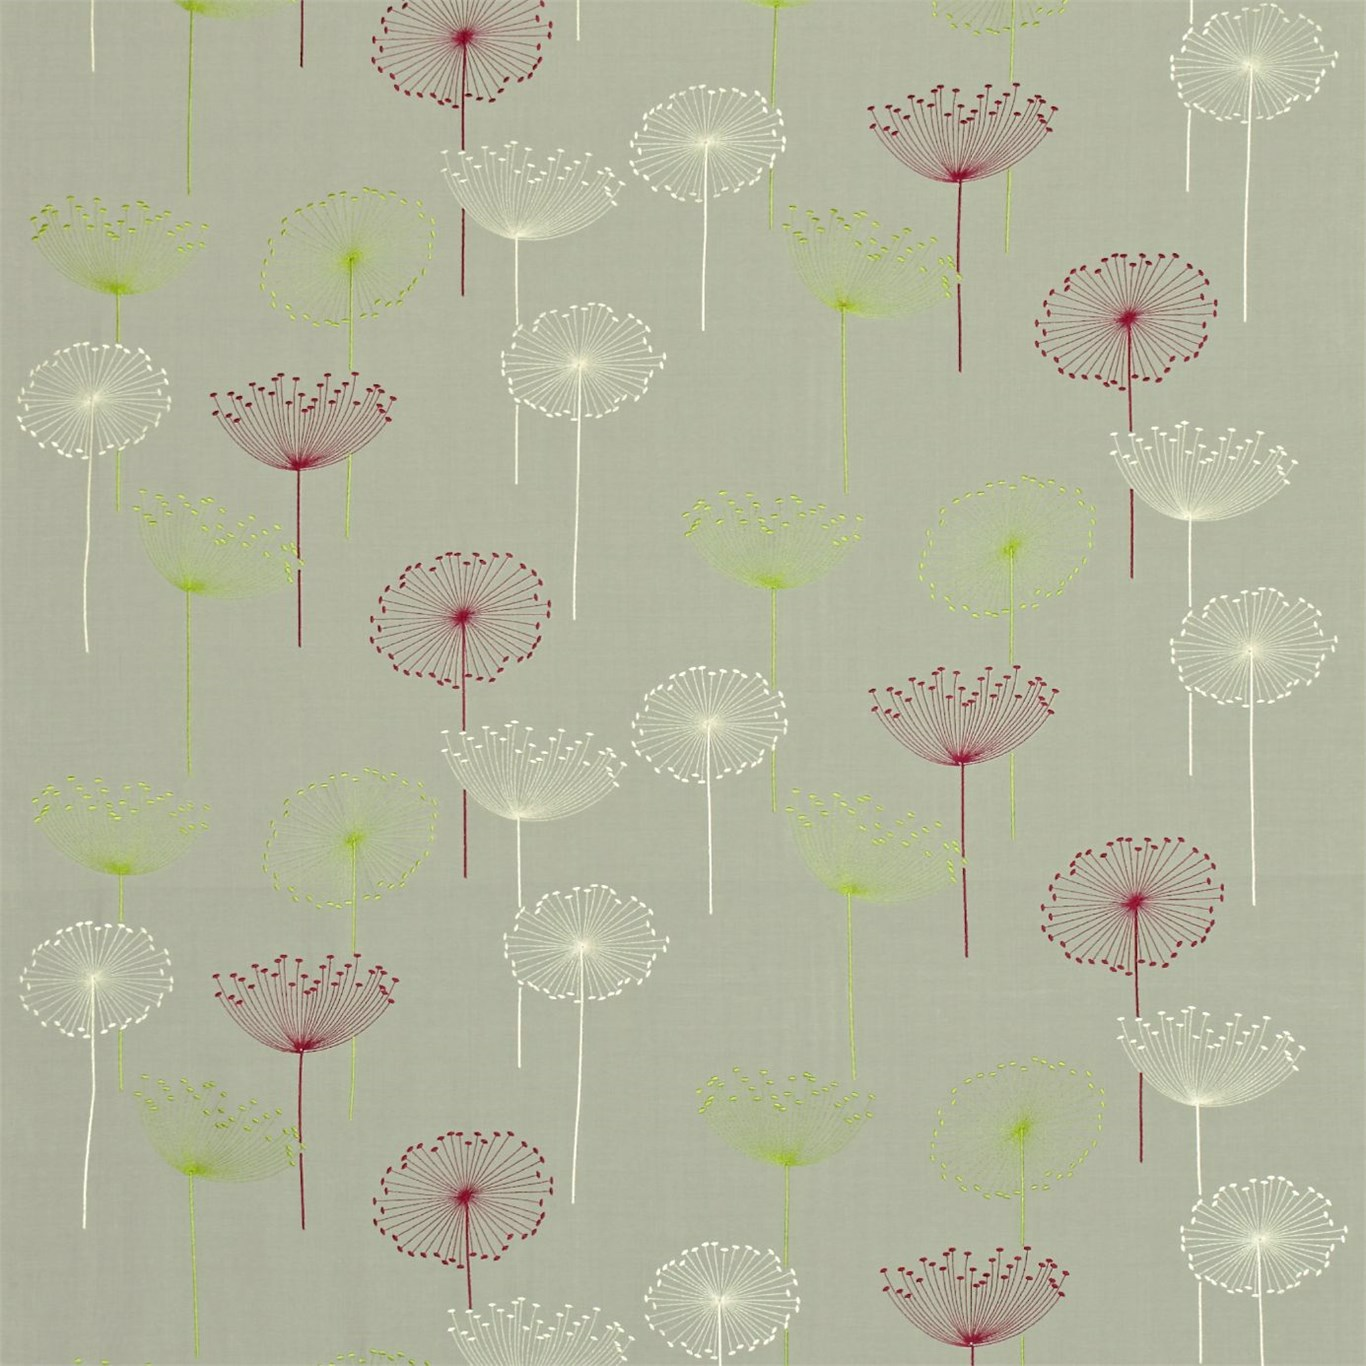 Dandelion Embroidery by SAN